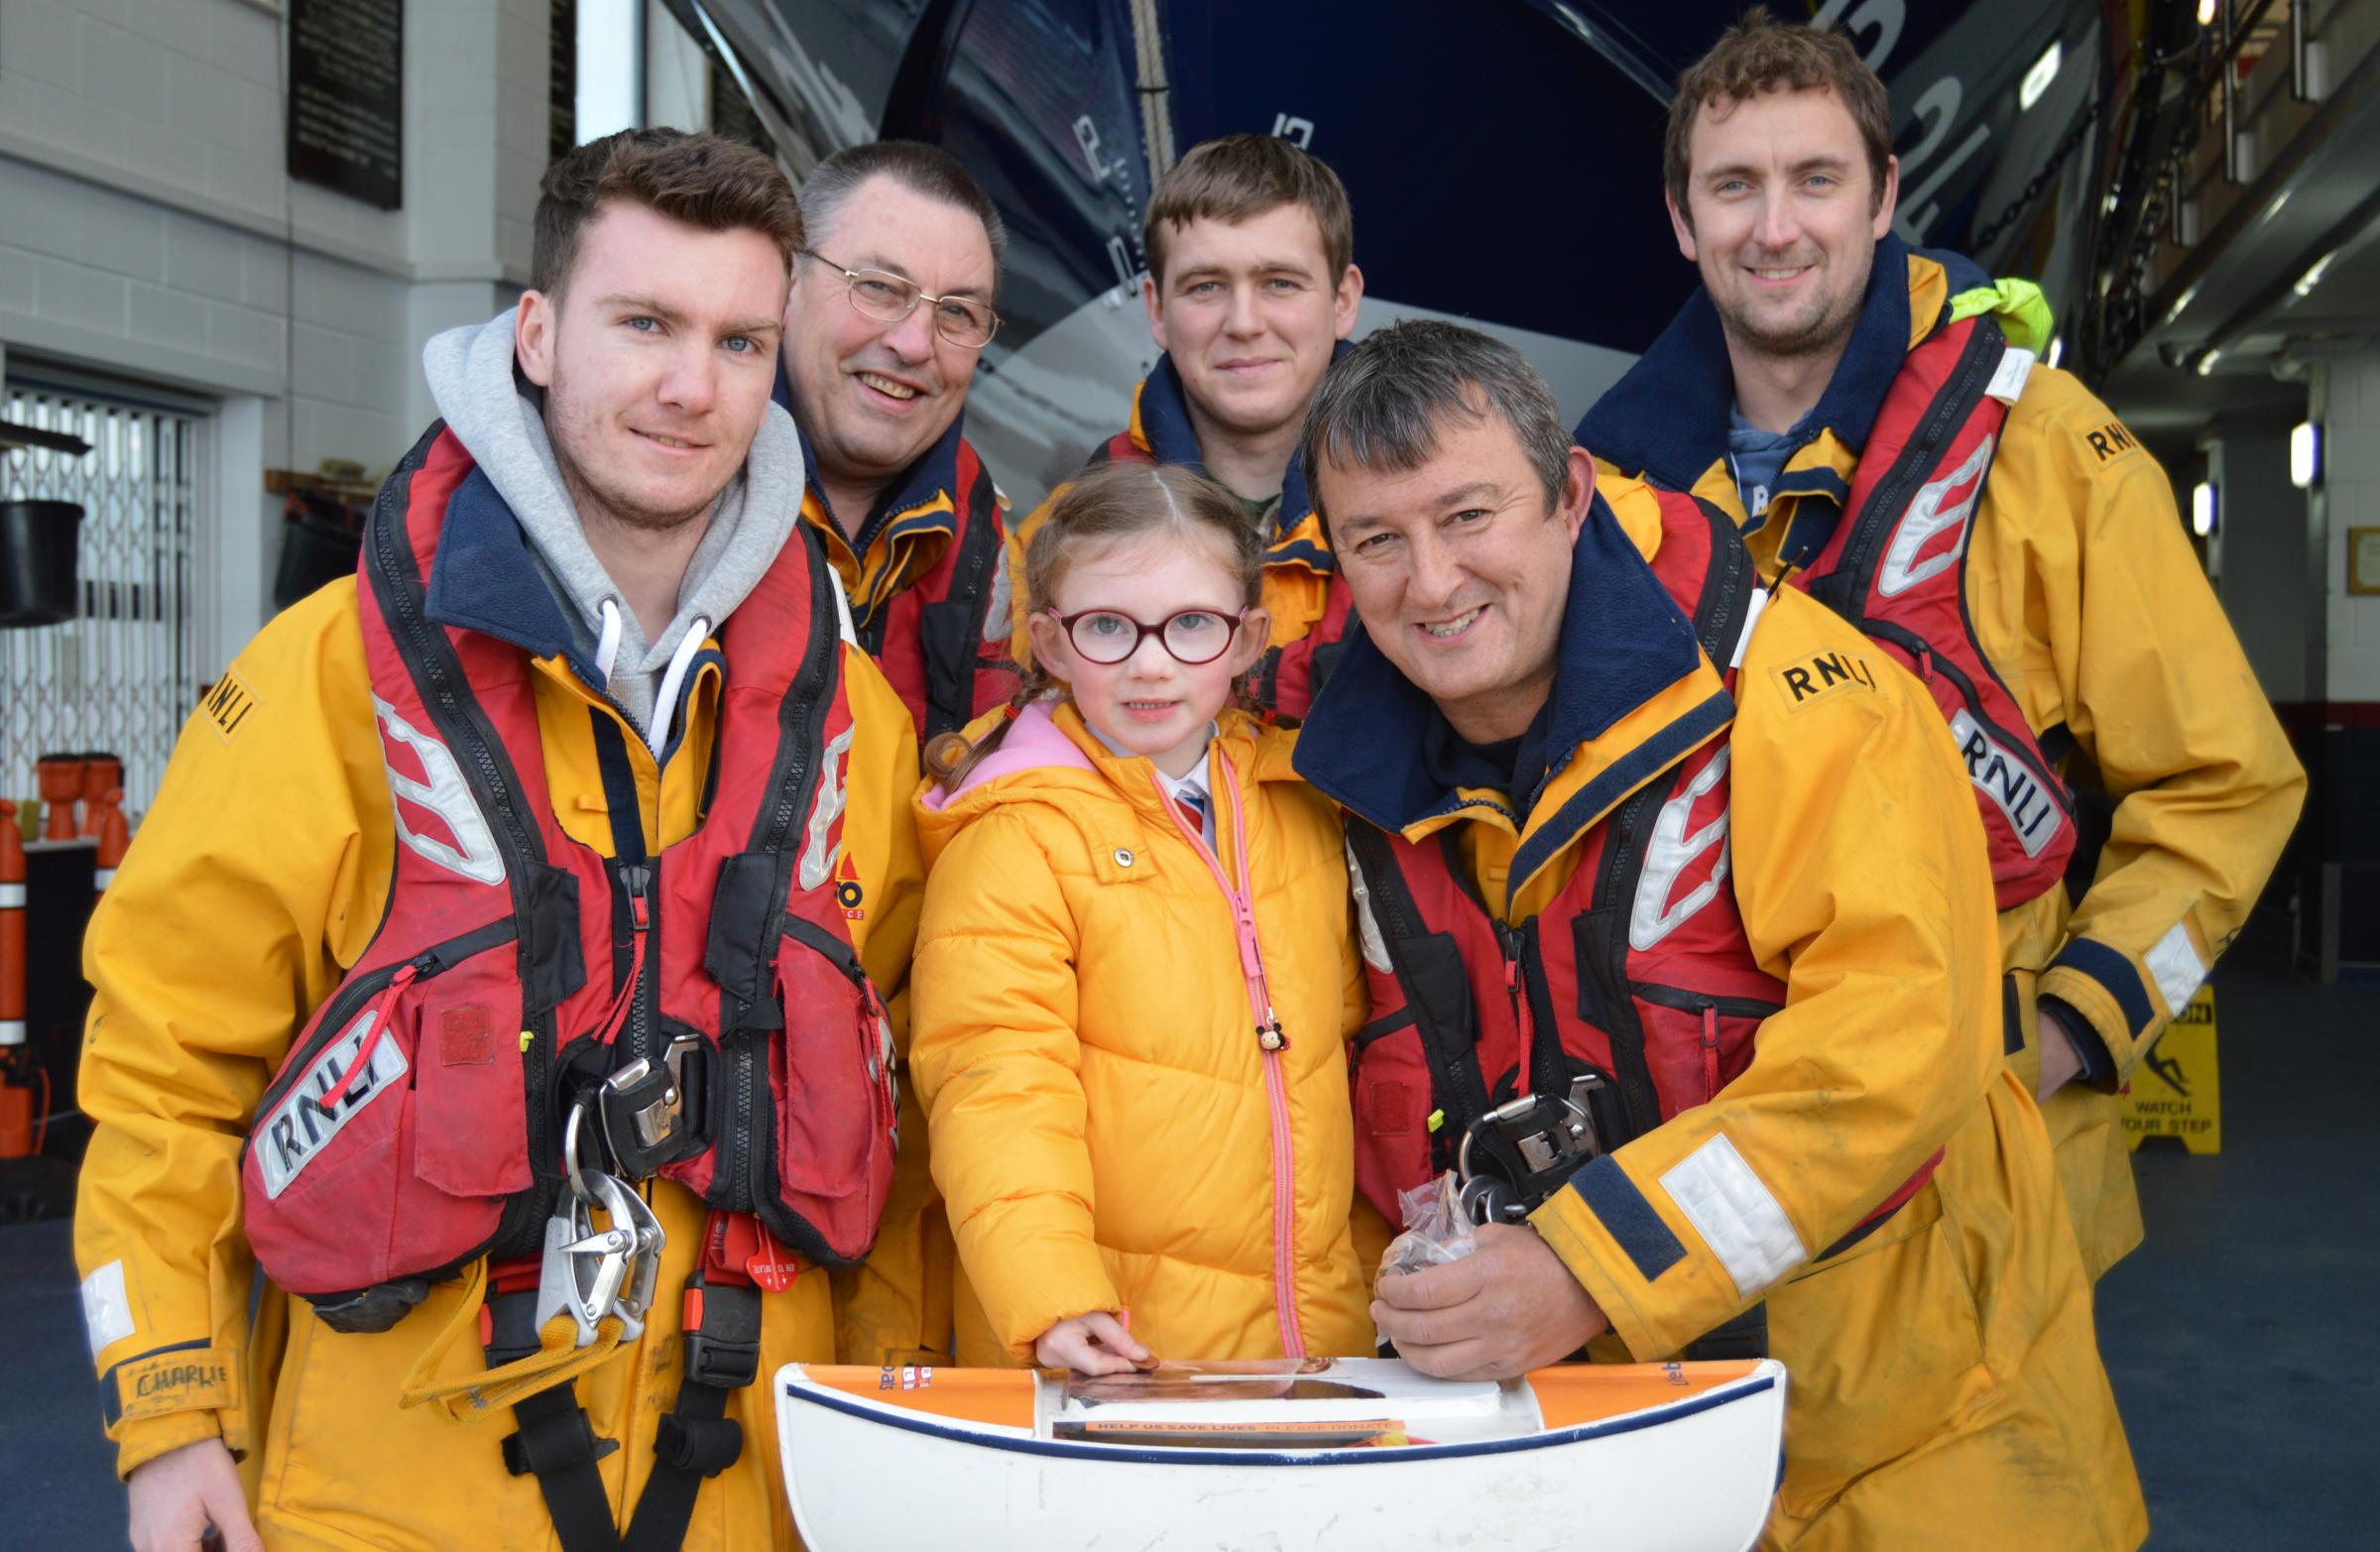 Darcey is pictured with Rhyl RNLI crew members Charlie Williams, Paul Frost, Dougie Lonsdale, Martin Jones and Andy Wilde